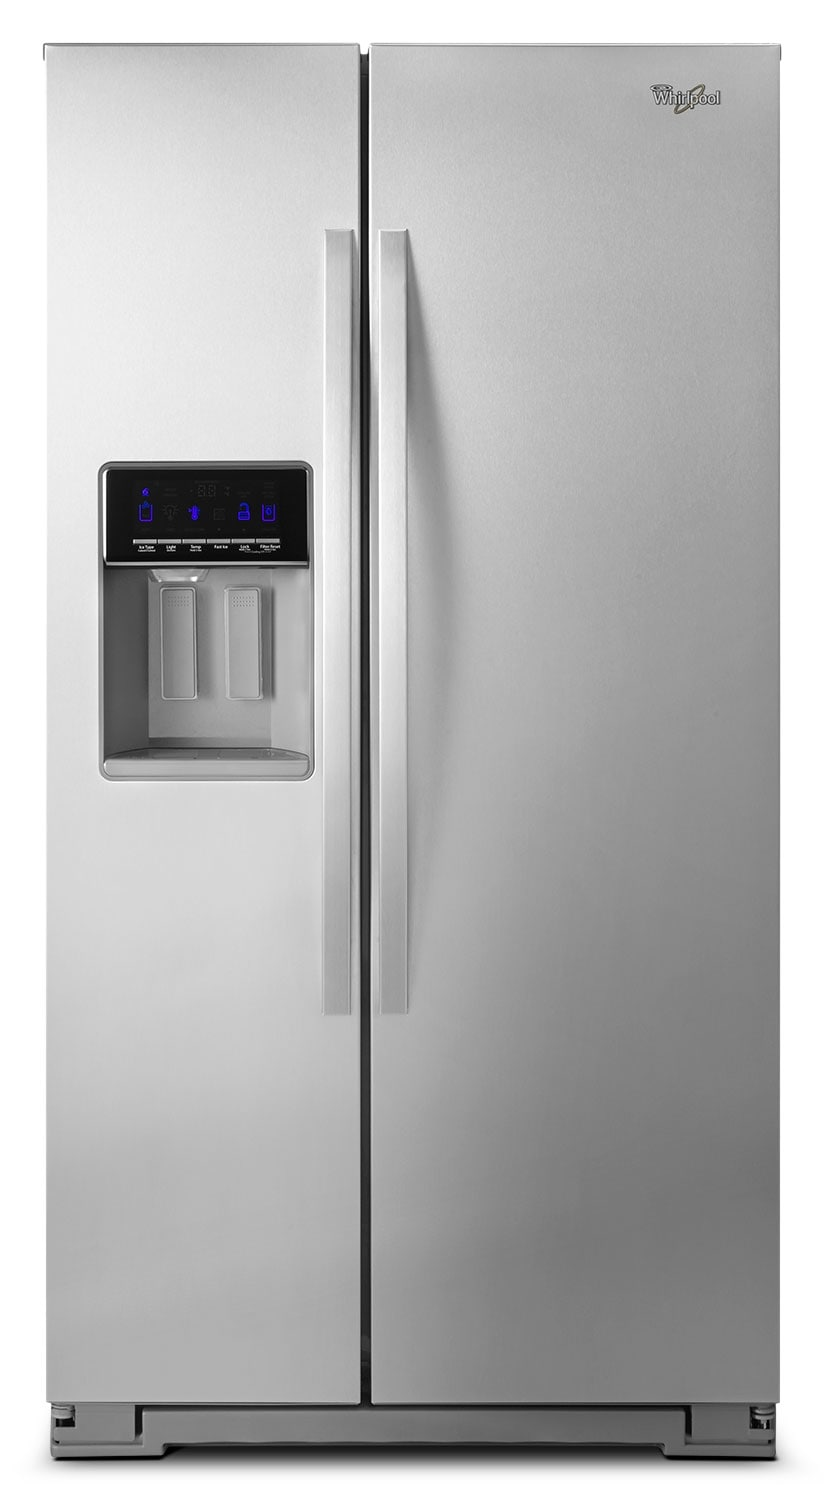 [Whirlpool Stainless Steel Side-by-Side Refrigerator (20.5 Cu. Ft.) - WRS571CIDM]